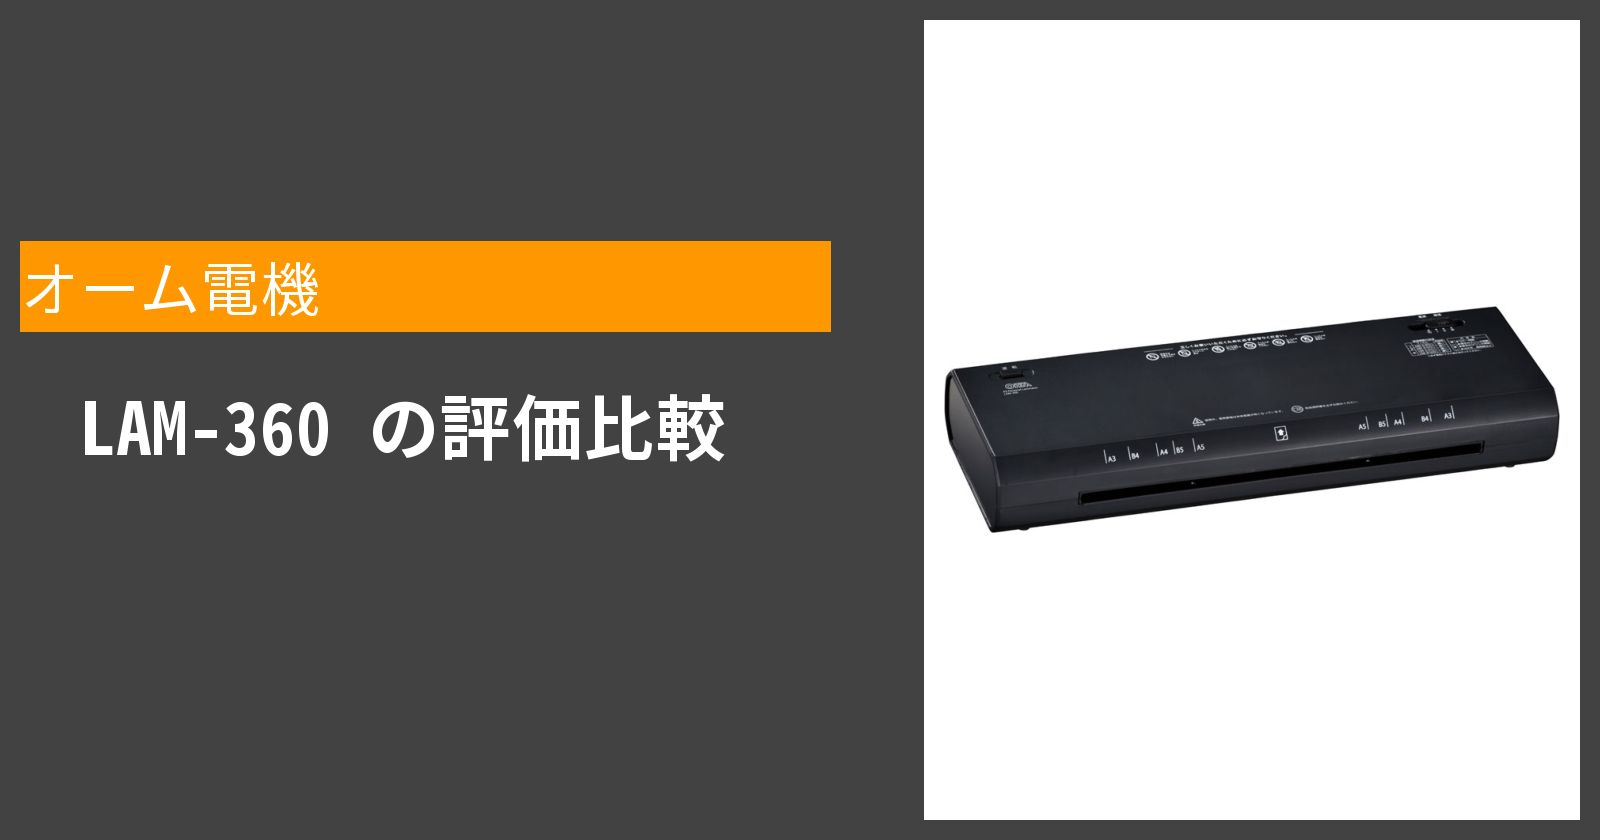 LAM-360を徹底評価